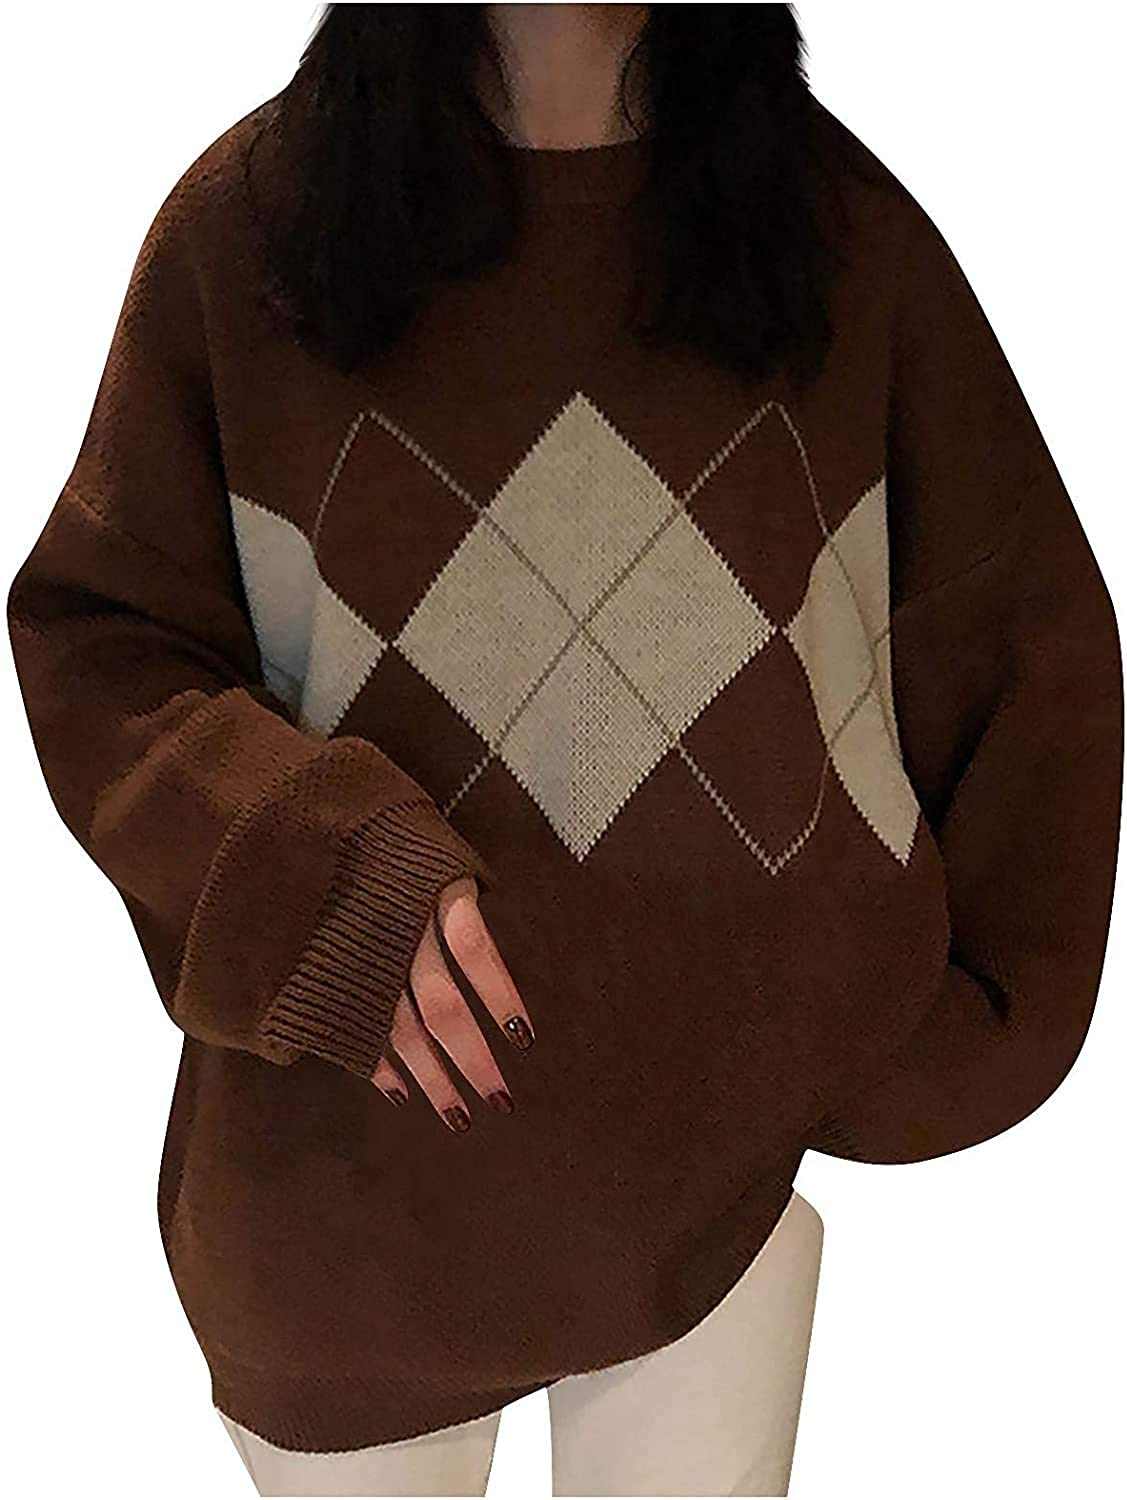 Women's Oversized Cool Sweater Long Sleeve Plaid Pullover Bat Sleeve Knitted Tops